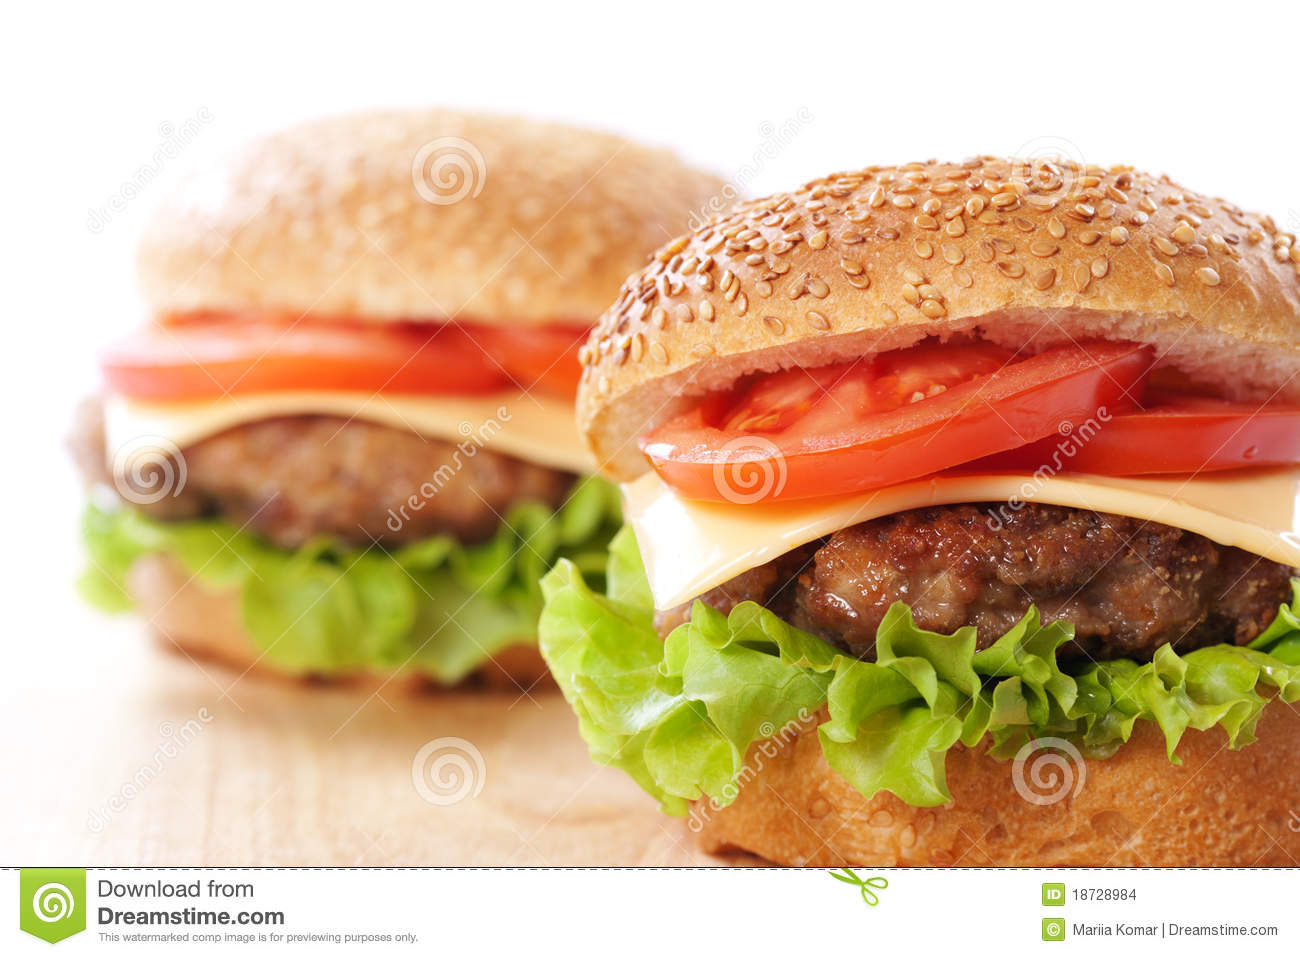 Two cheeseburgers with tomatoes and lettuce on a wooden table.